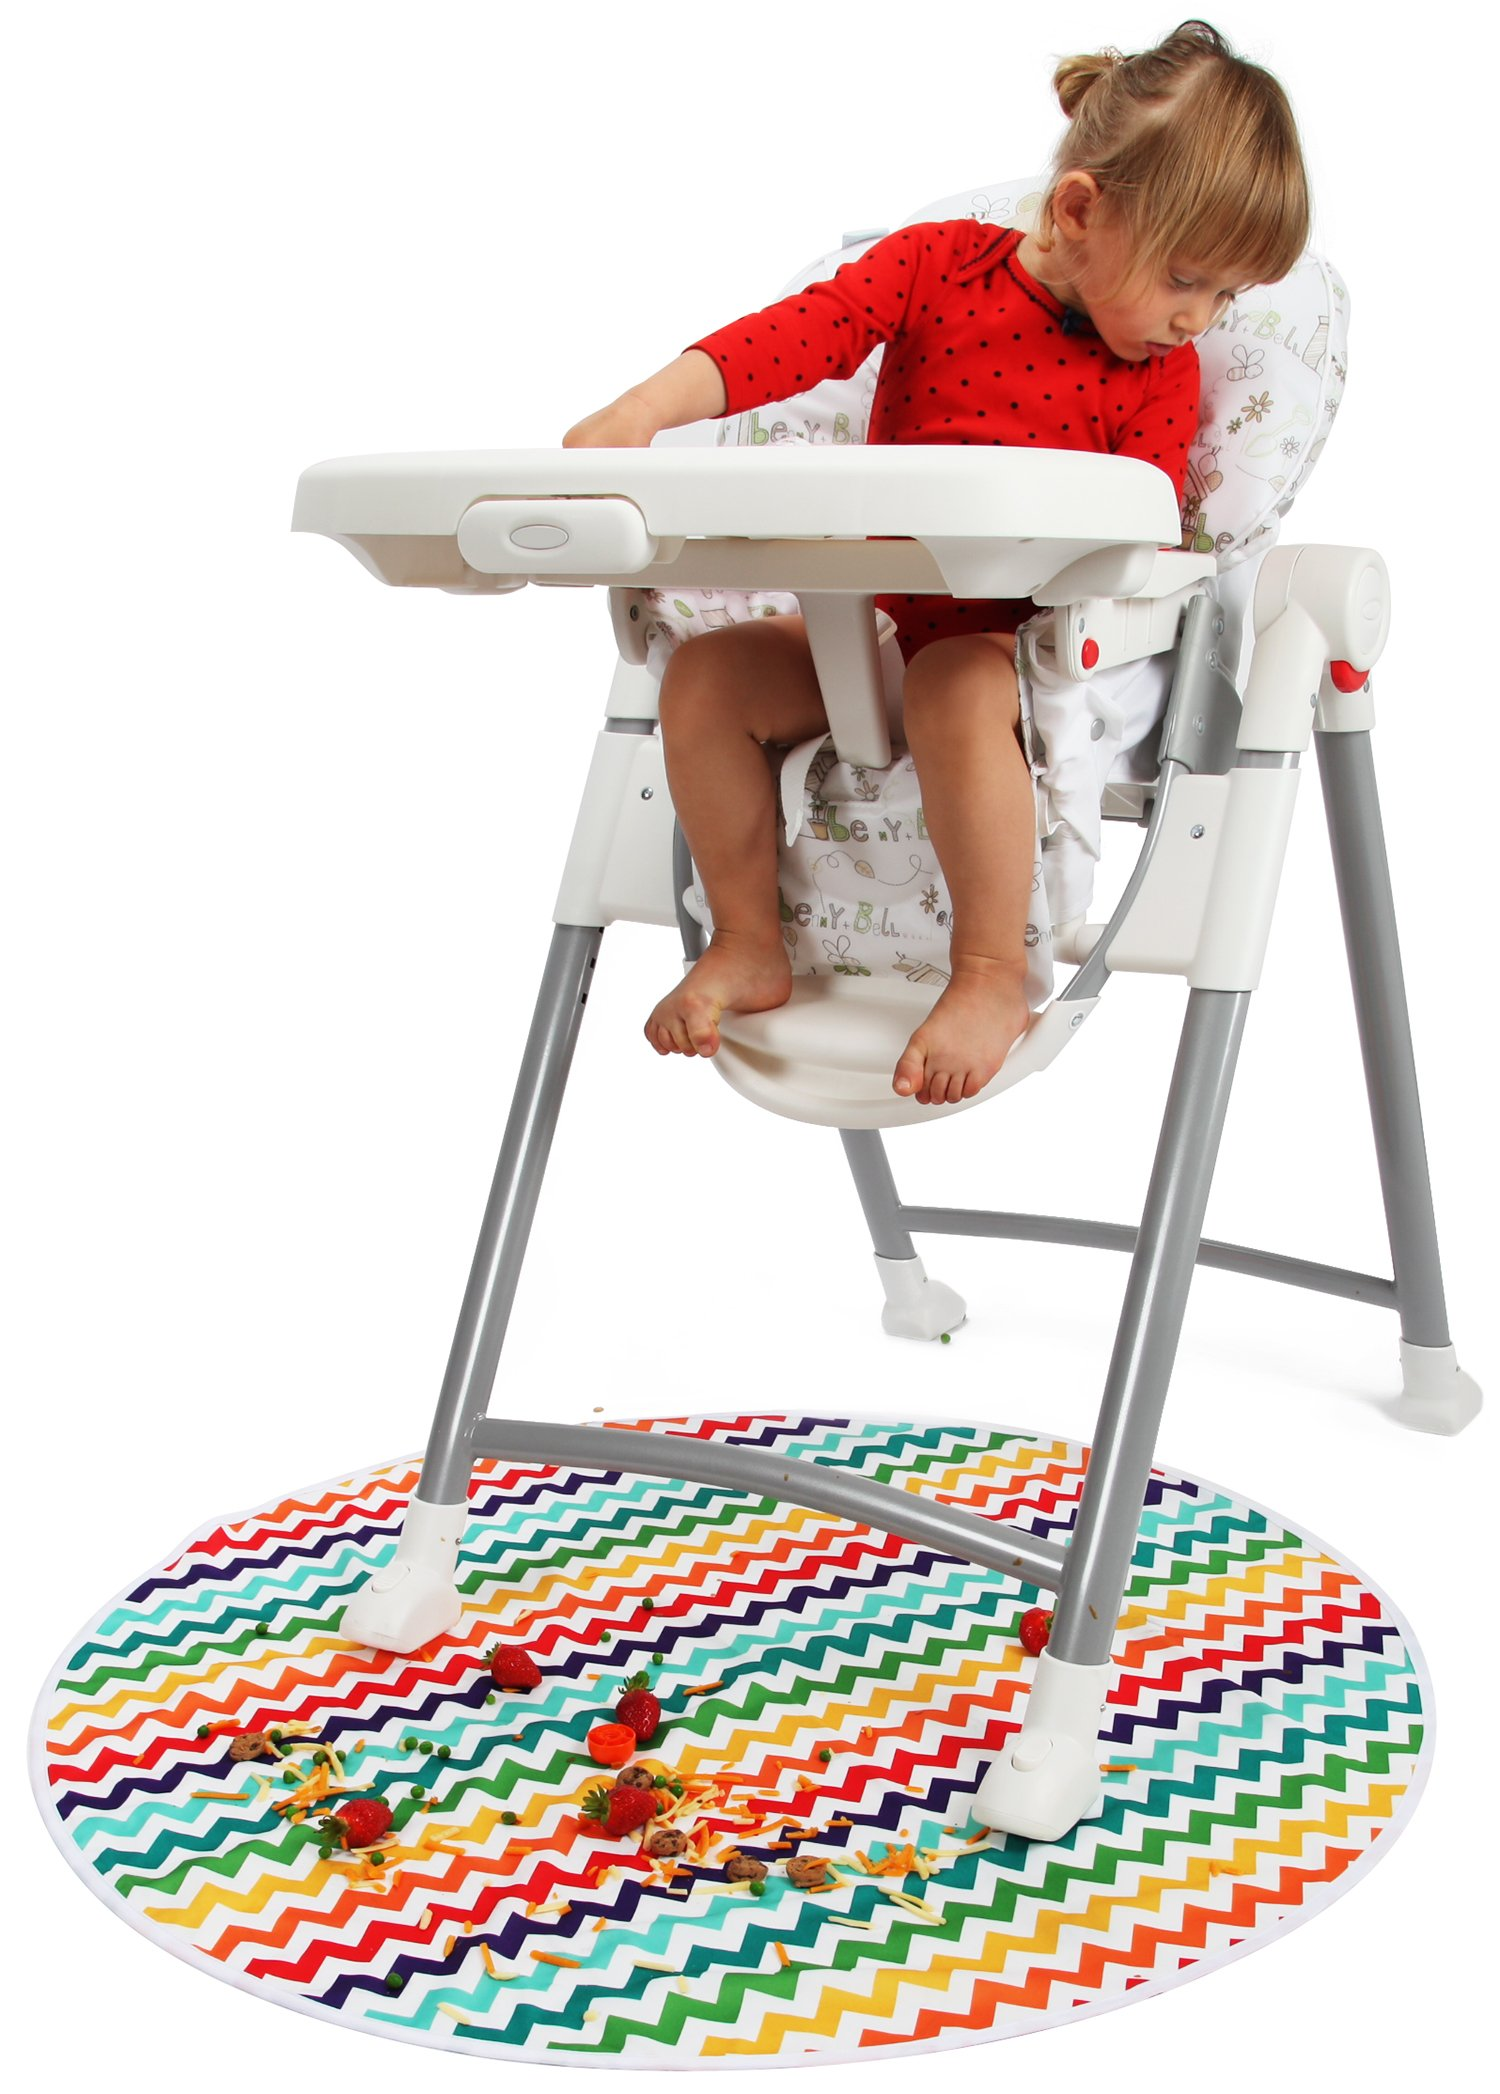 kenley baby splat mat for under high chair waterproof washable